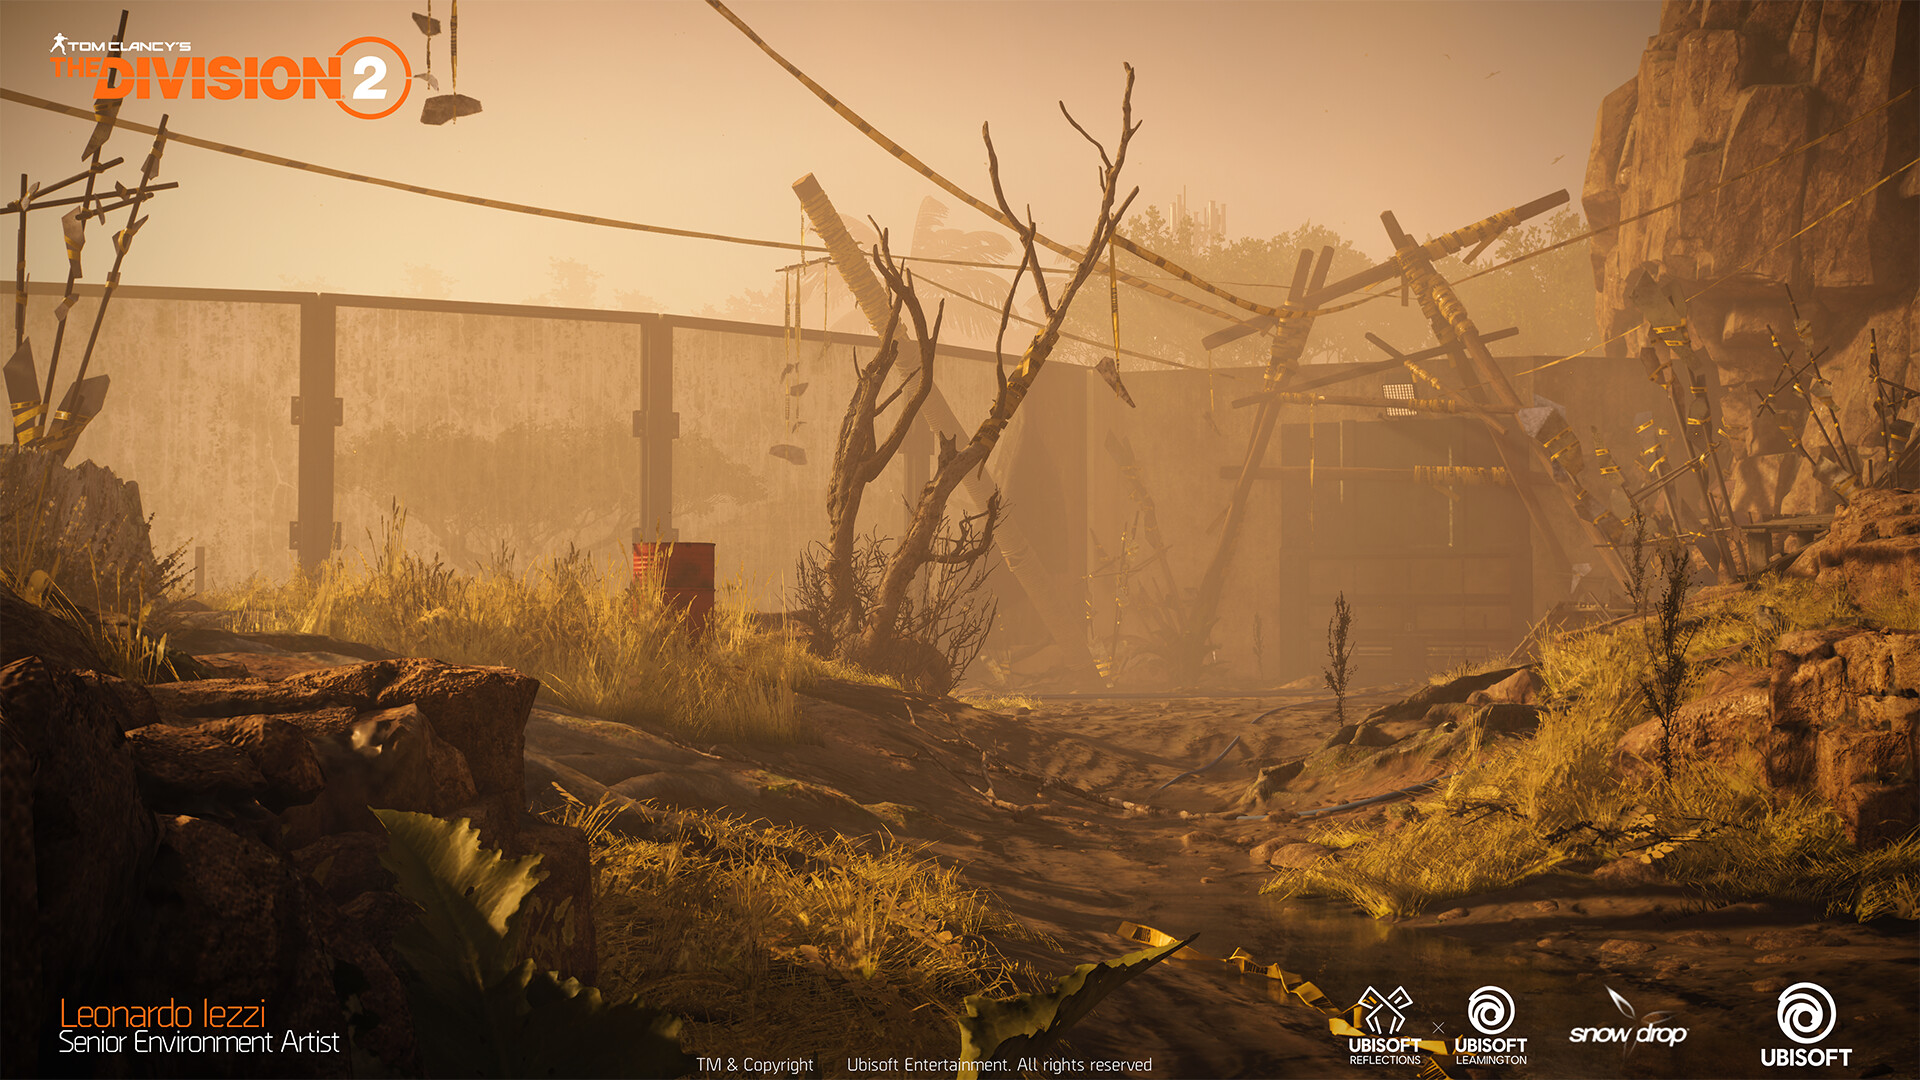 Leonardo iezzi leonardo iezzi the division 2 zoo environment art 06 lion 004